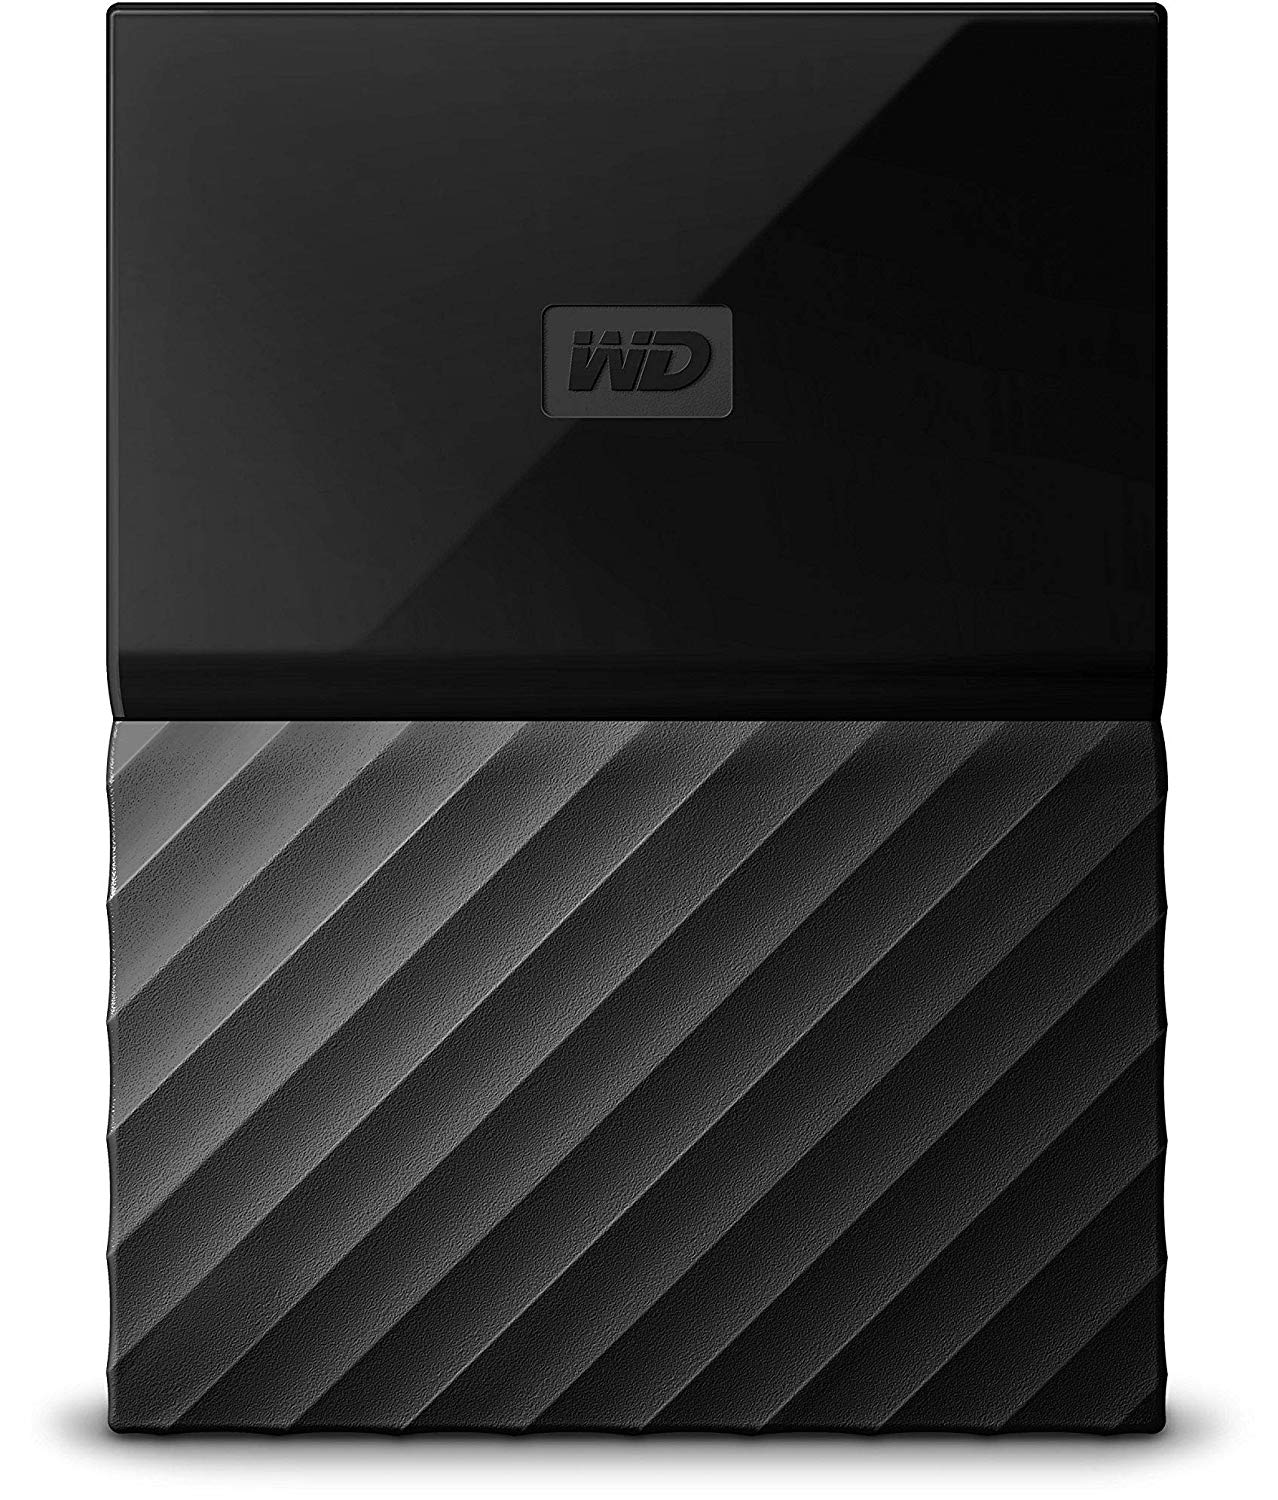 Best External Hard Drive 2021